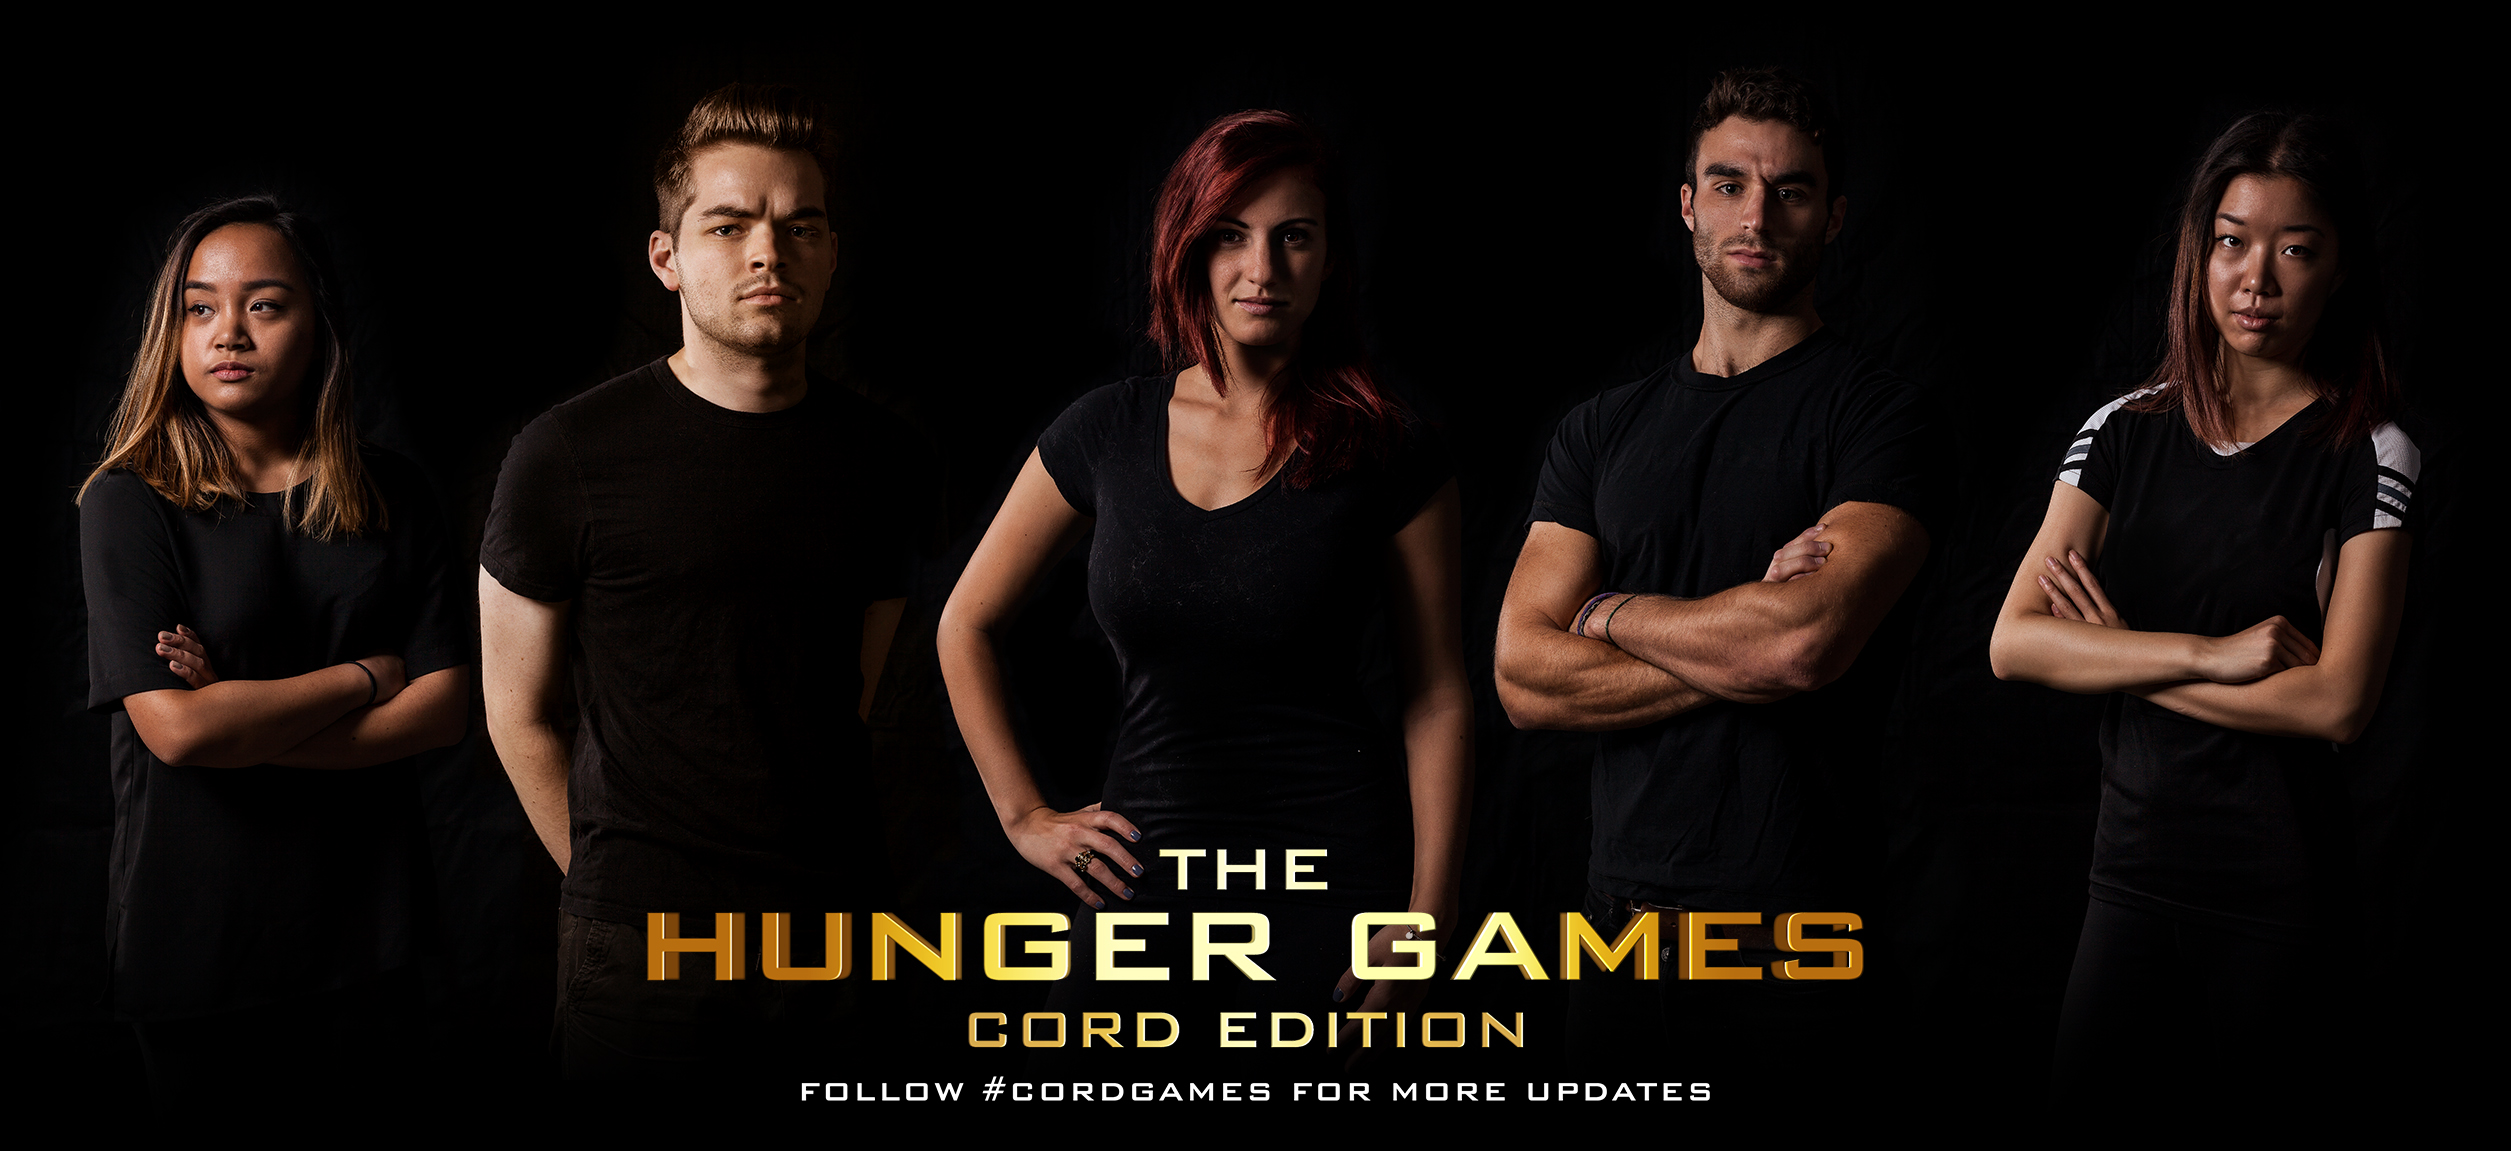 The Hunger Games: Cord Edition